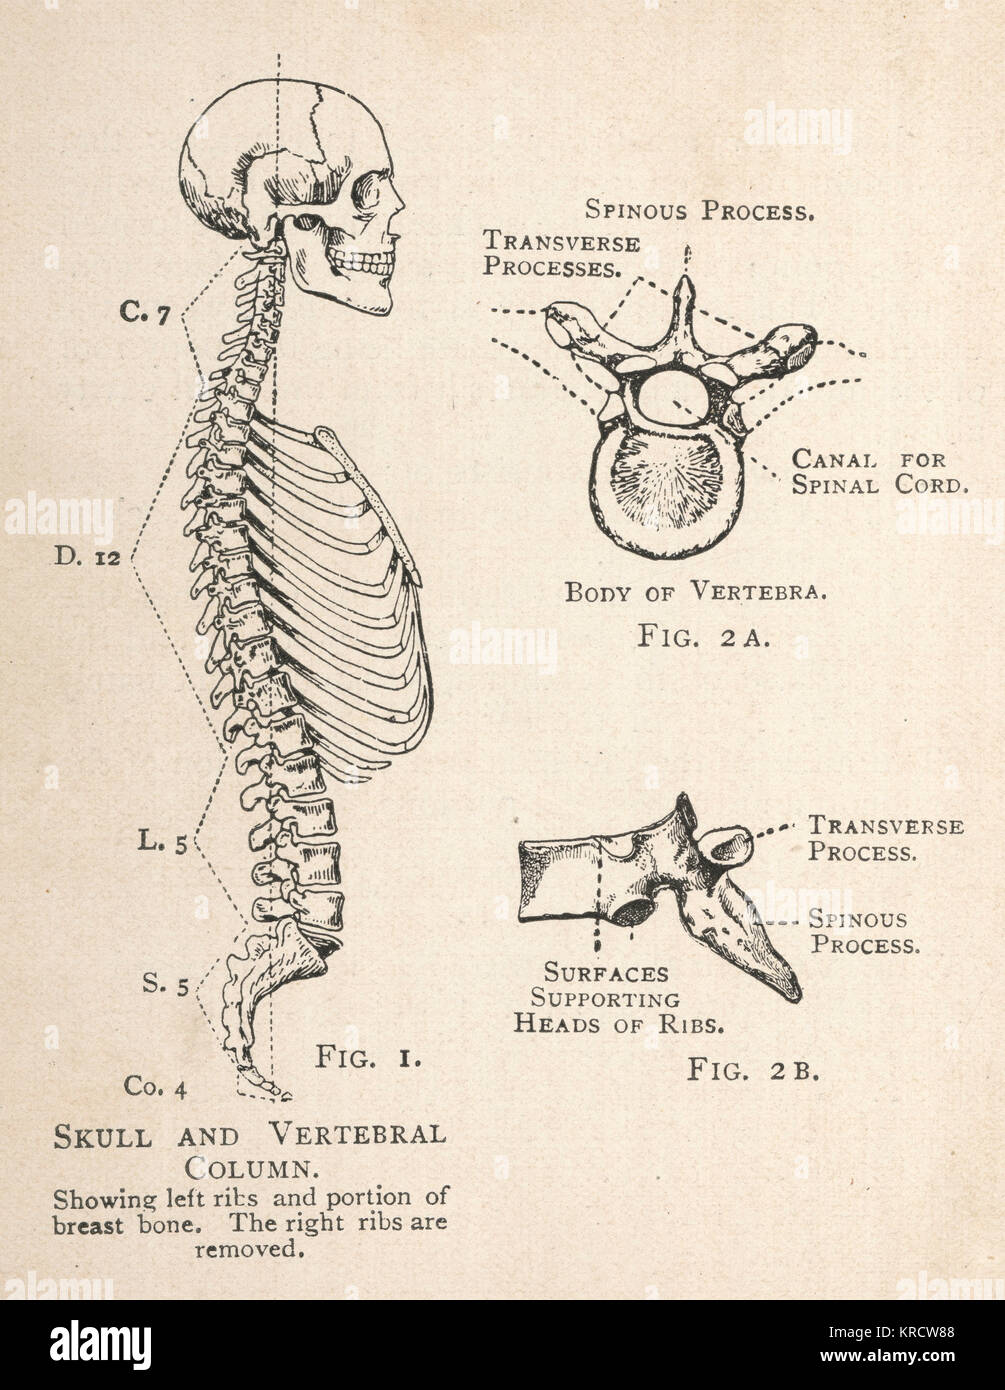 hight resolution of a diagram of the human skull and vertebral column showing the left ribs and a portion of the breastbone as well as a single vertebra from two angles